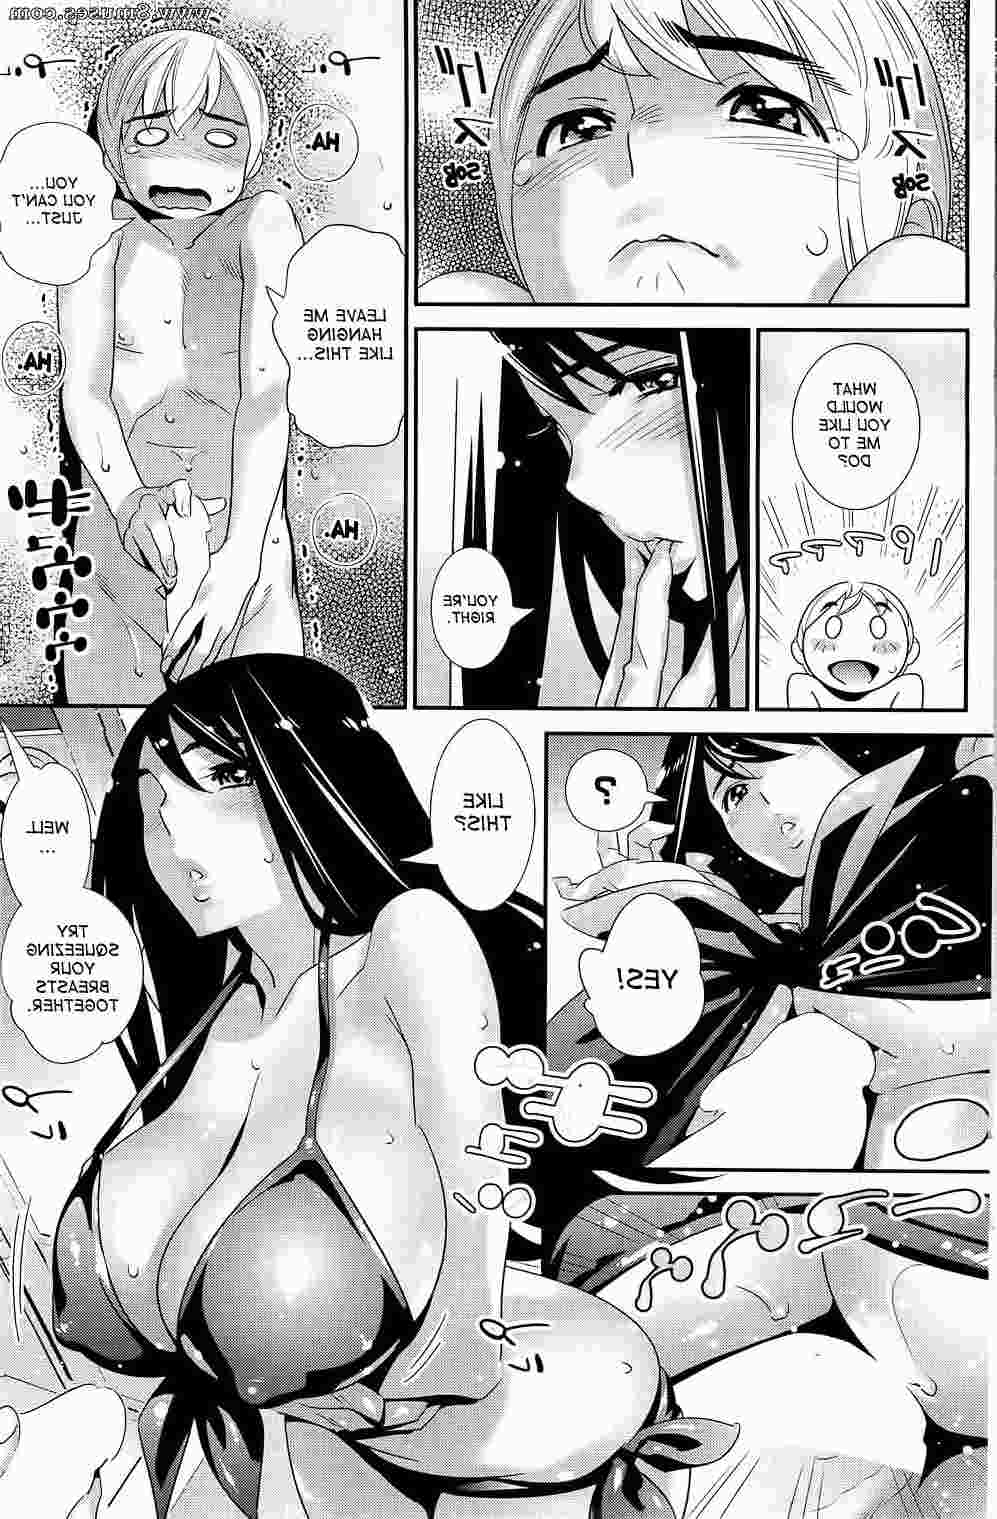 Hentai-and-Manga-English/Katsura-Yoshihiro/The-Ghost-Behind-My-Back The_Ghost_Behind_My_Back__8muses_-_Sex_and_Porn_Comics_12.jpg